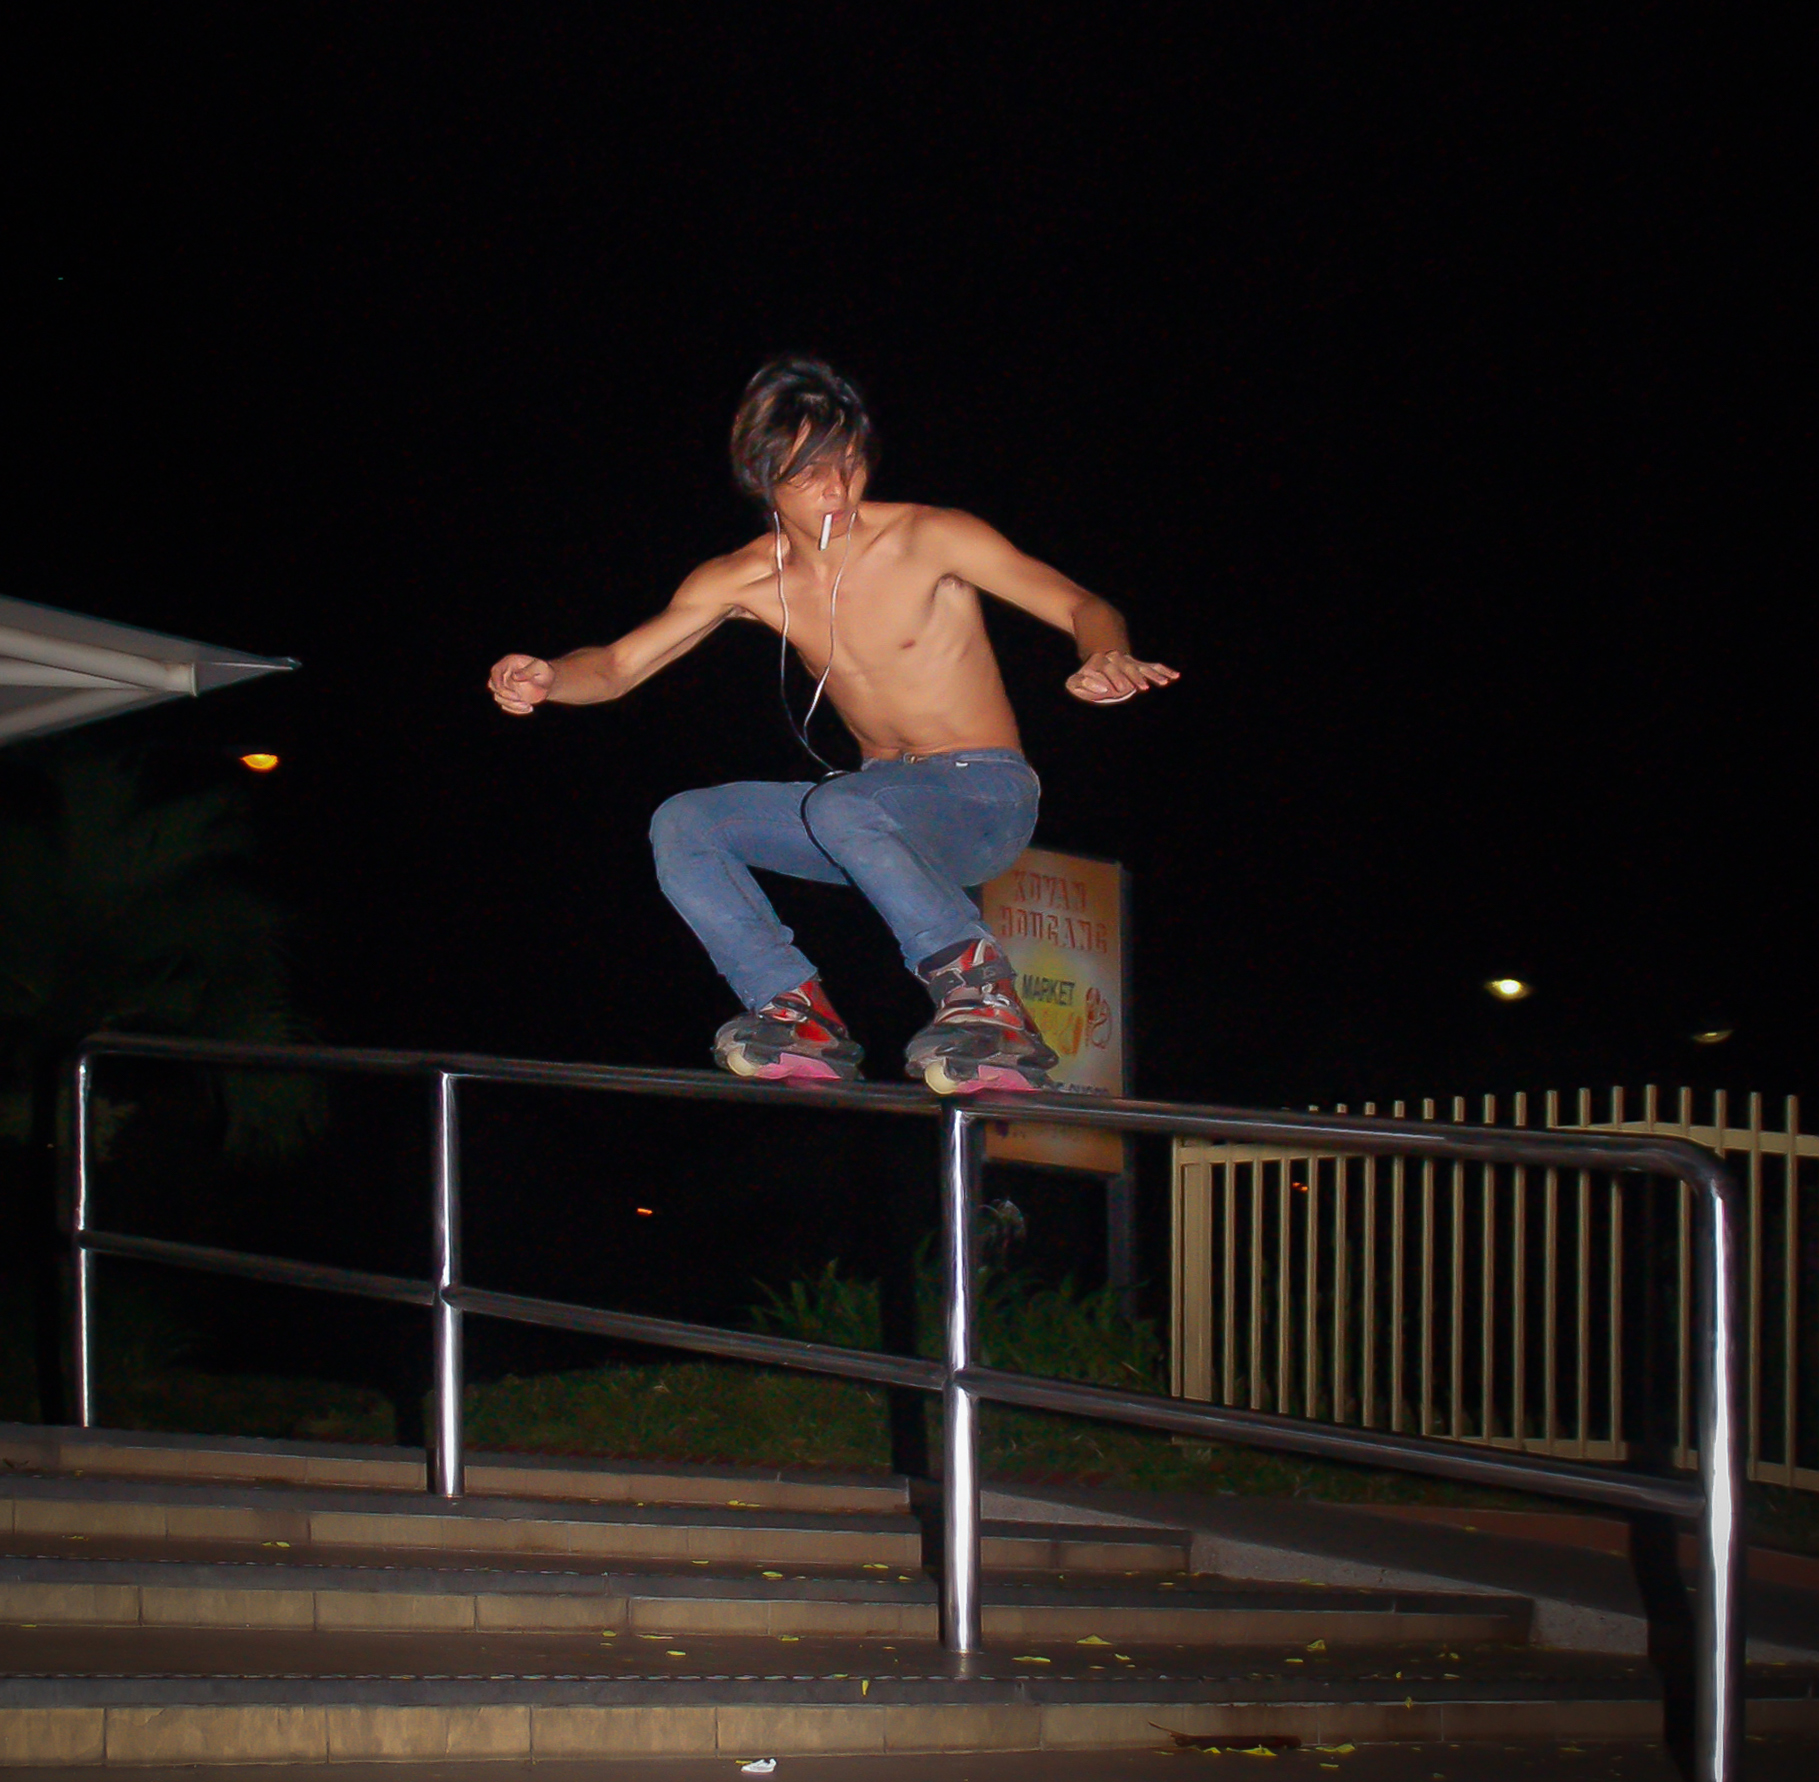 A skater grinds down a handrail while smoking at Hougang Central.